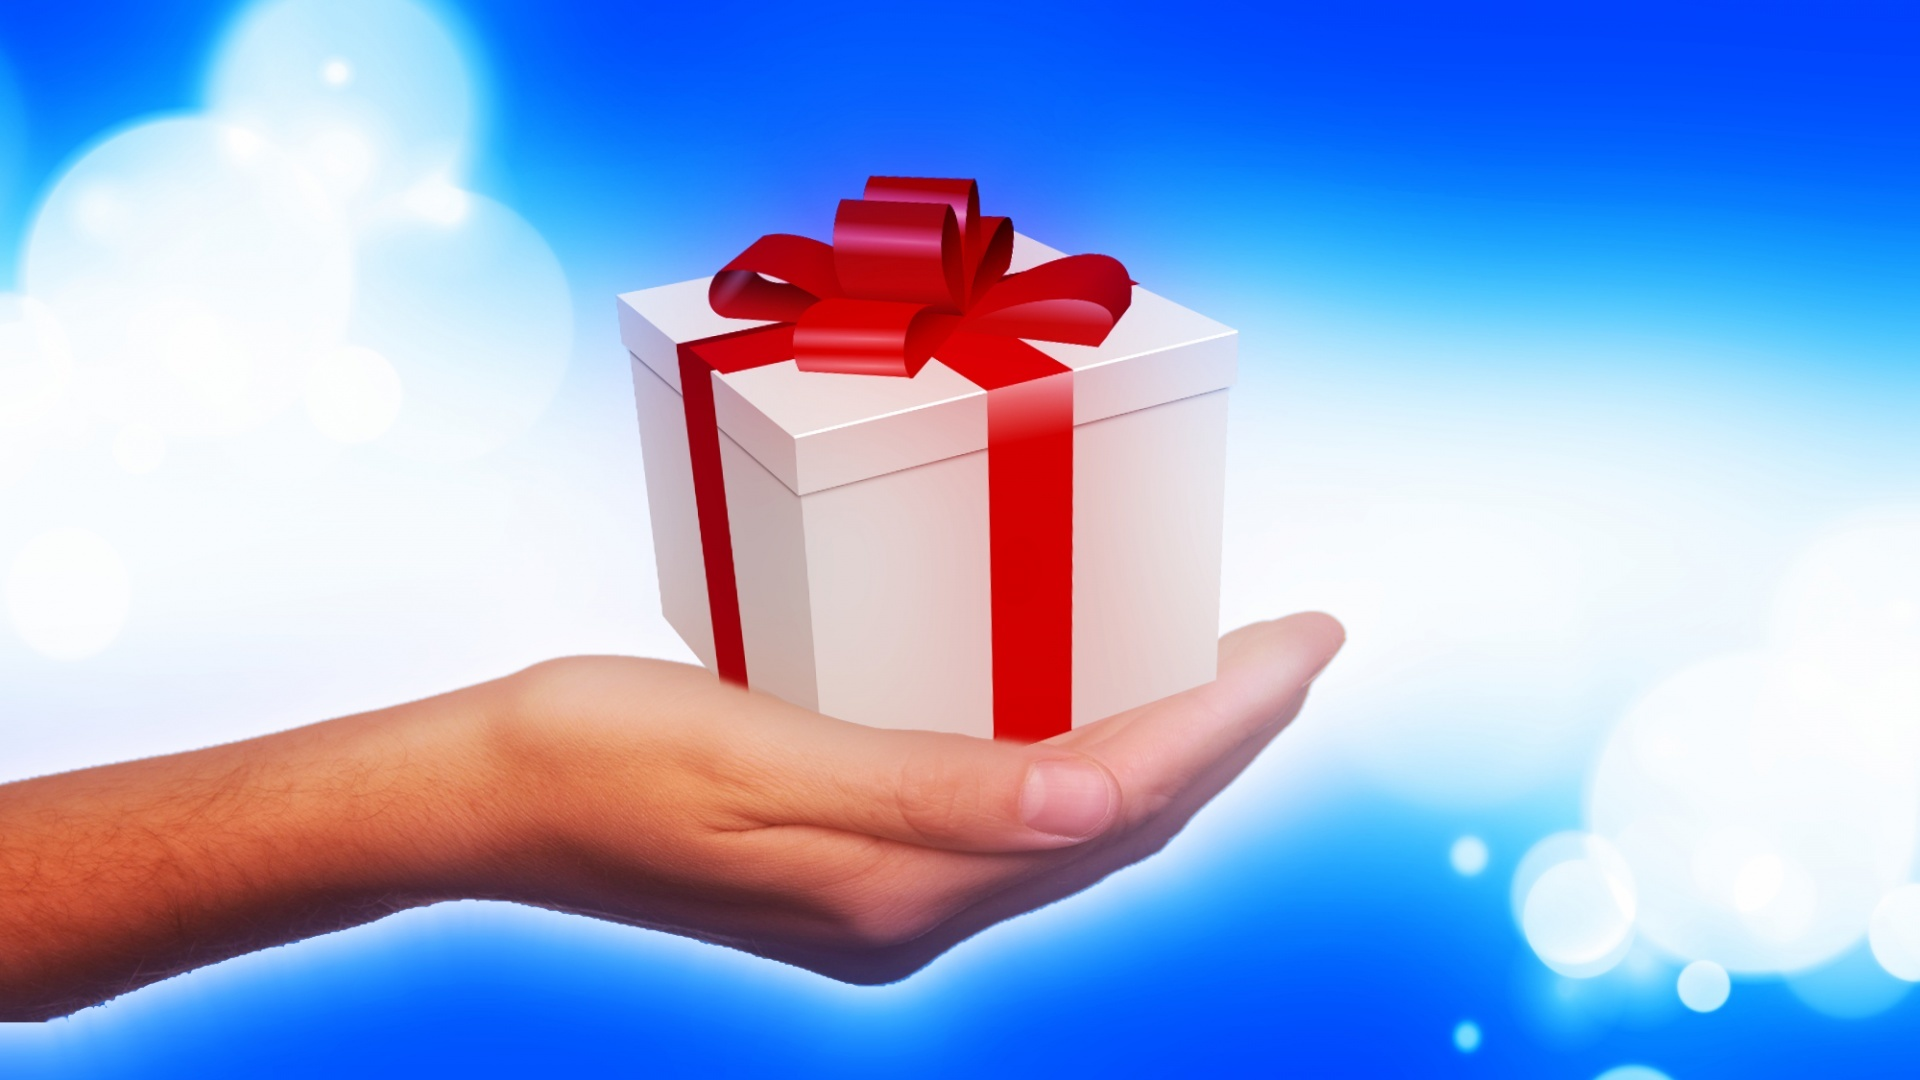 How Do You Give The Gift of Giving to Your Child?